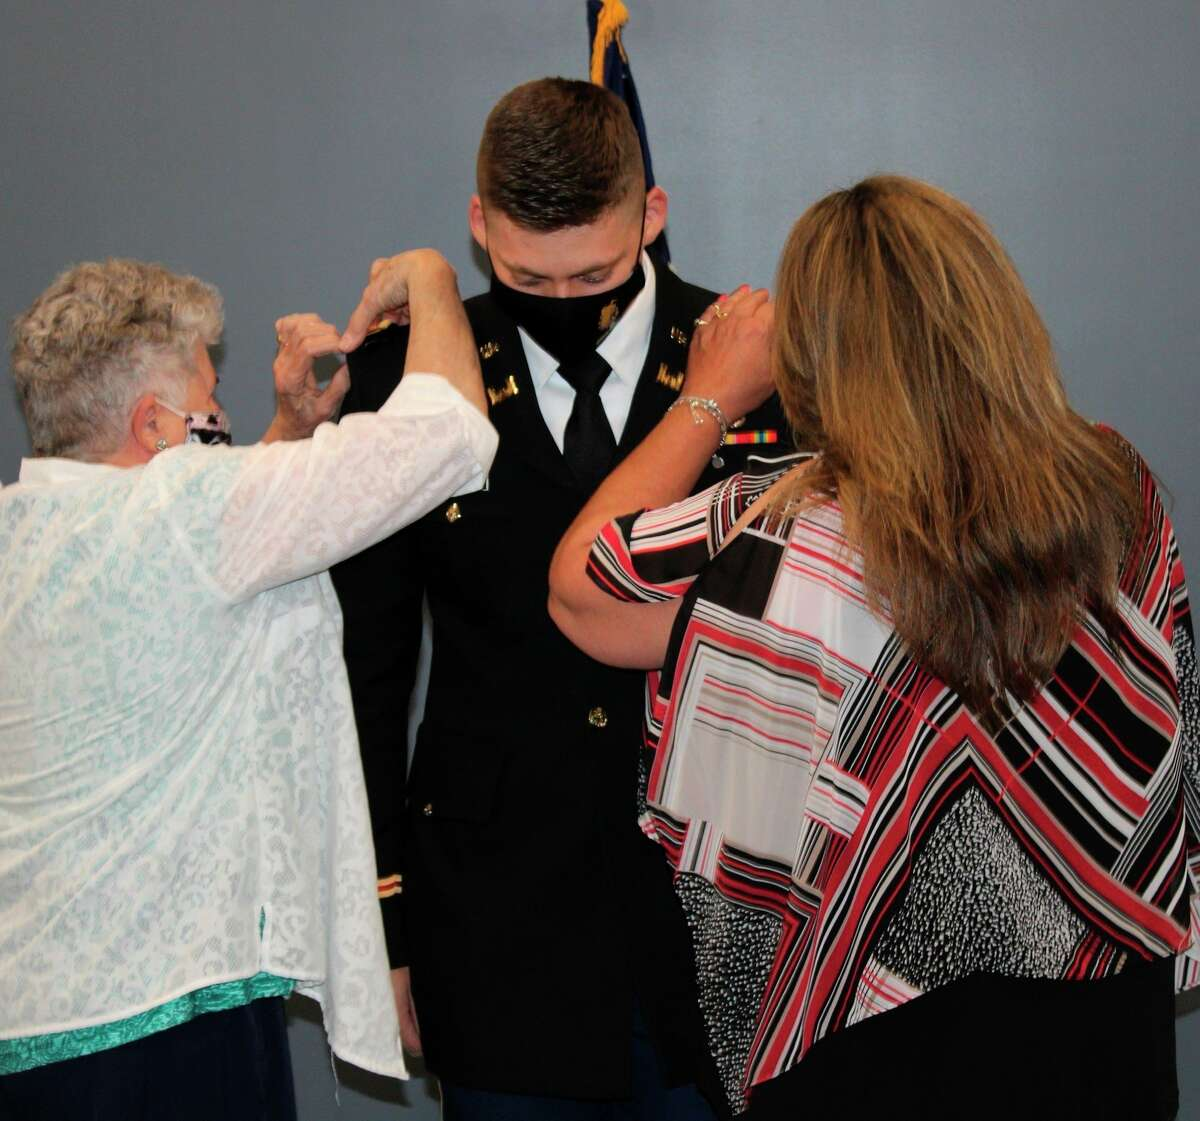 Michael Alderman, (center) a graduate of Ferris State University's Mechanical Engineering Technology program from Westland, received his commission as a Second Lieutenant in the United States Army on Monday, May 3, at a ceremony on campus in Big Rapids. (Courtesy photo)